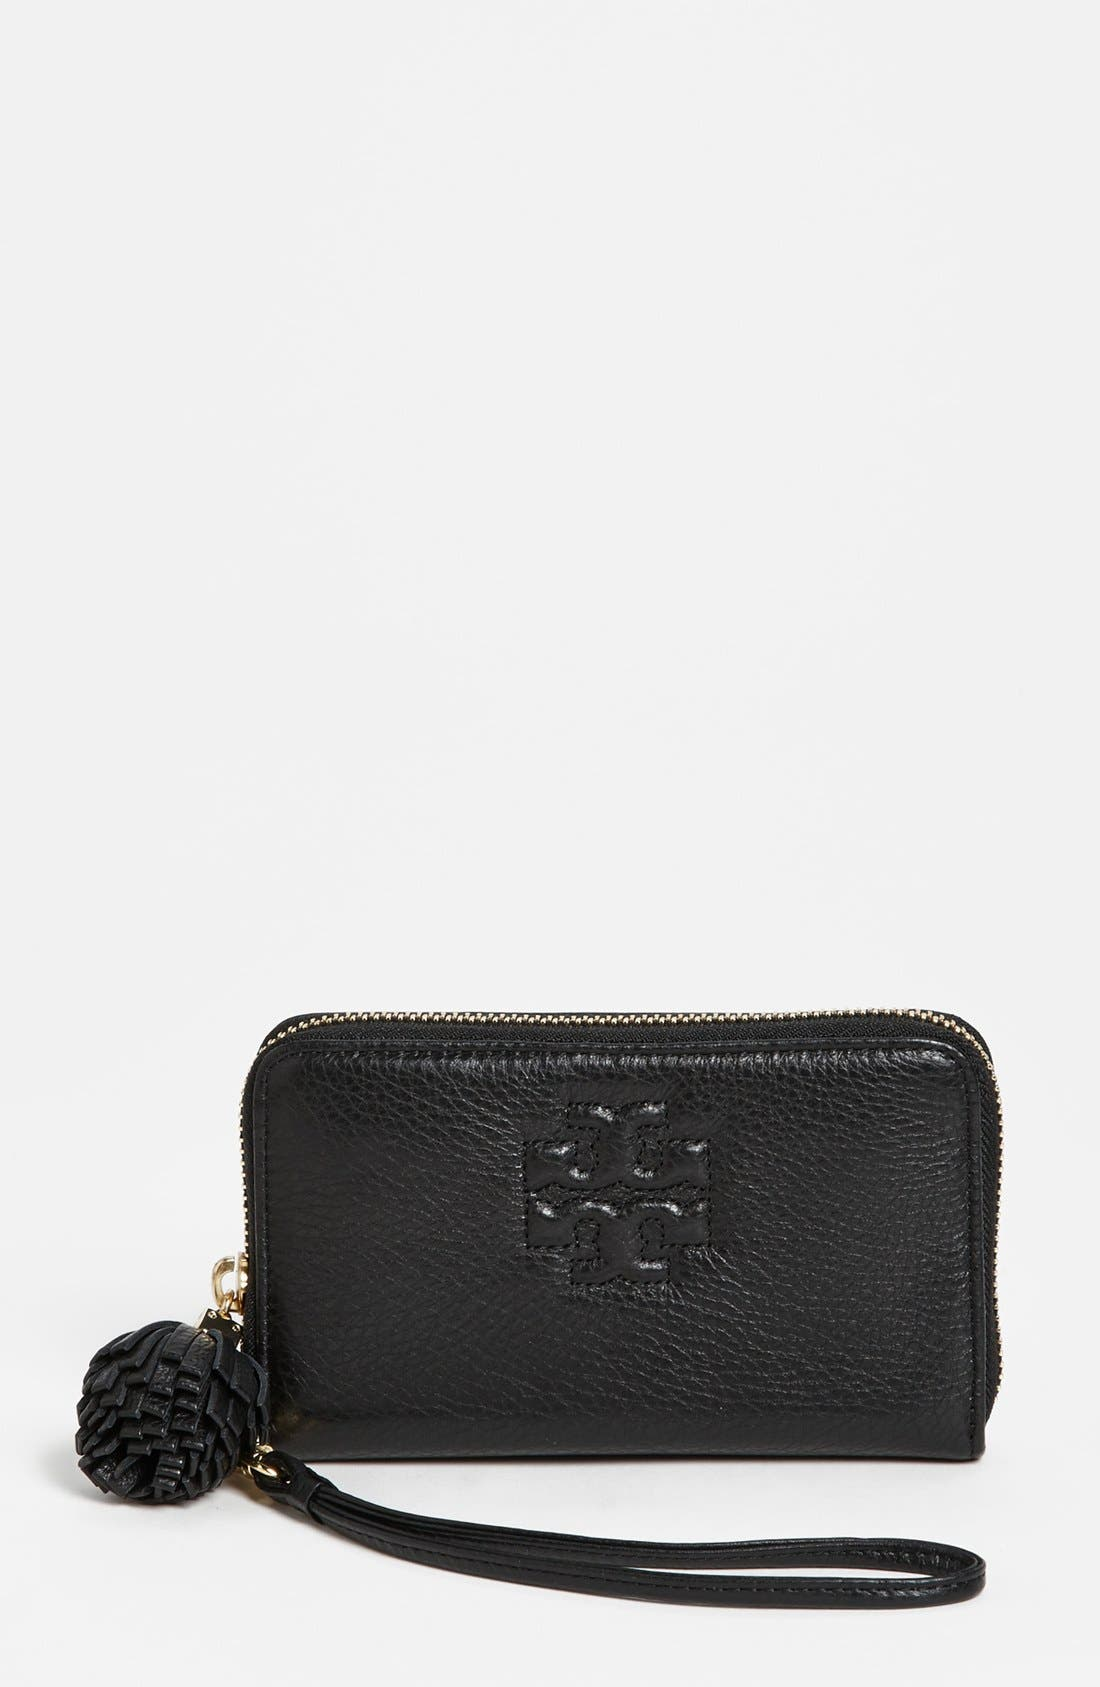 Alternate Image 1 Selected - Tory Burch 'Thea' Smart Phone Wristlet